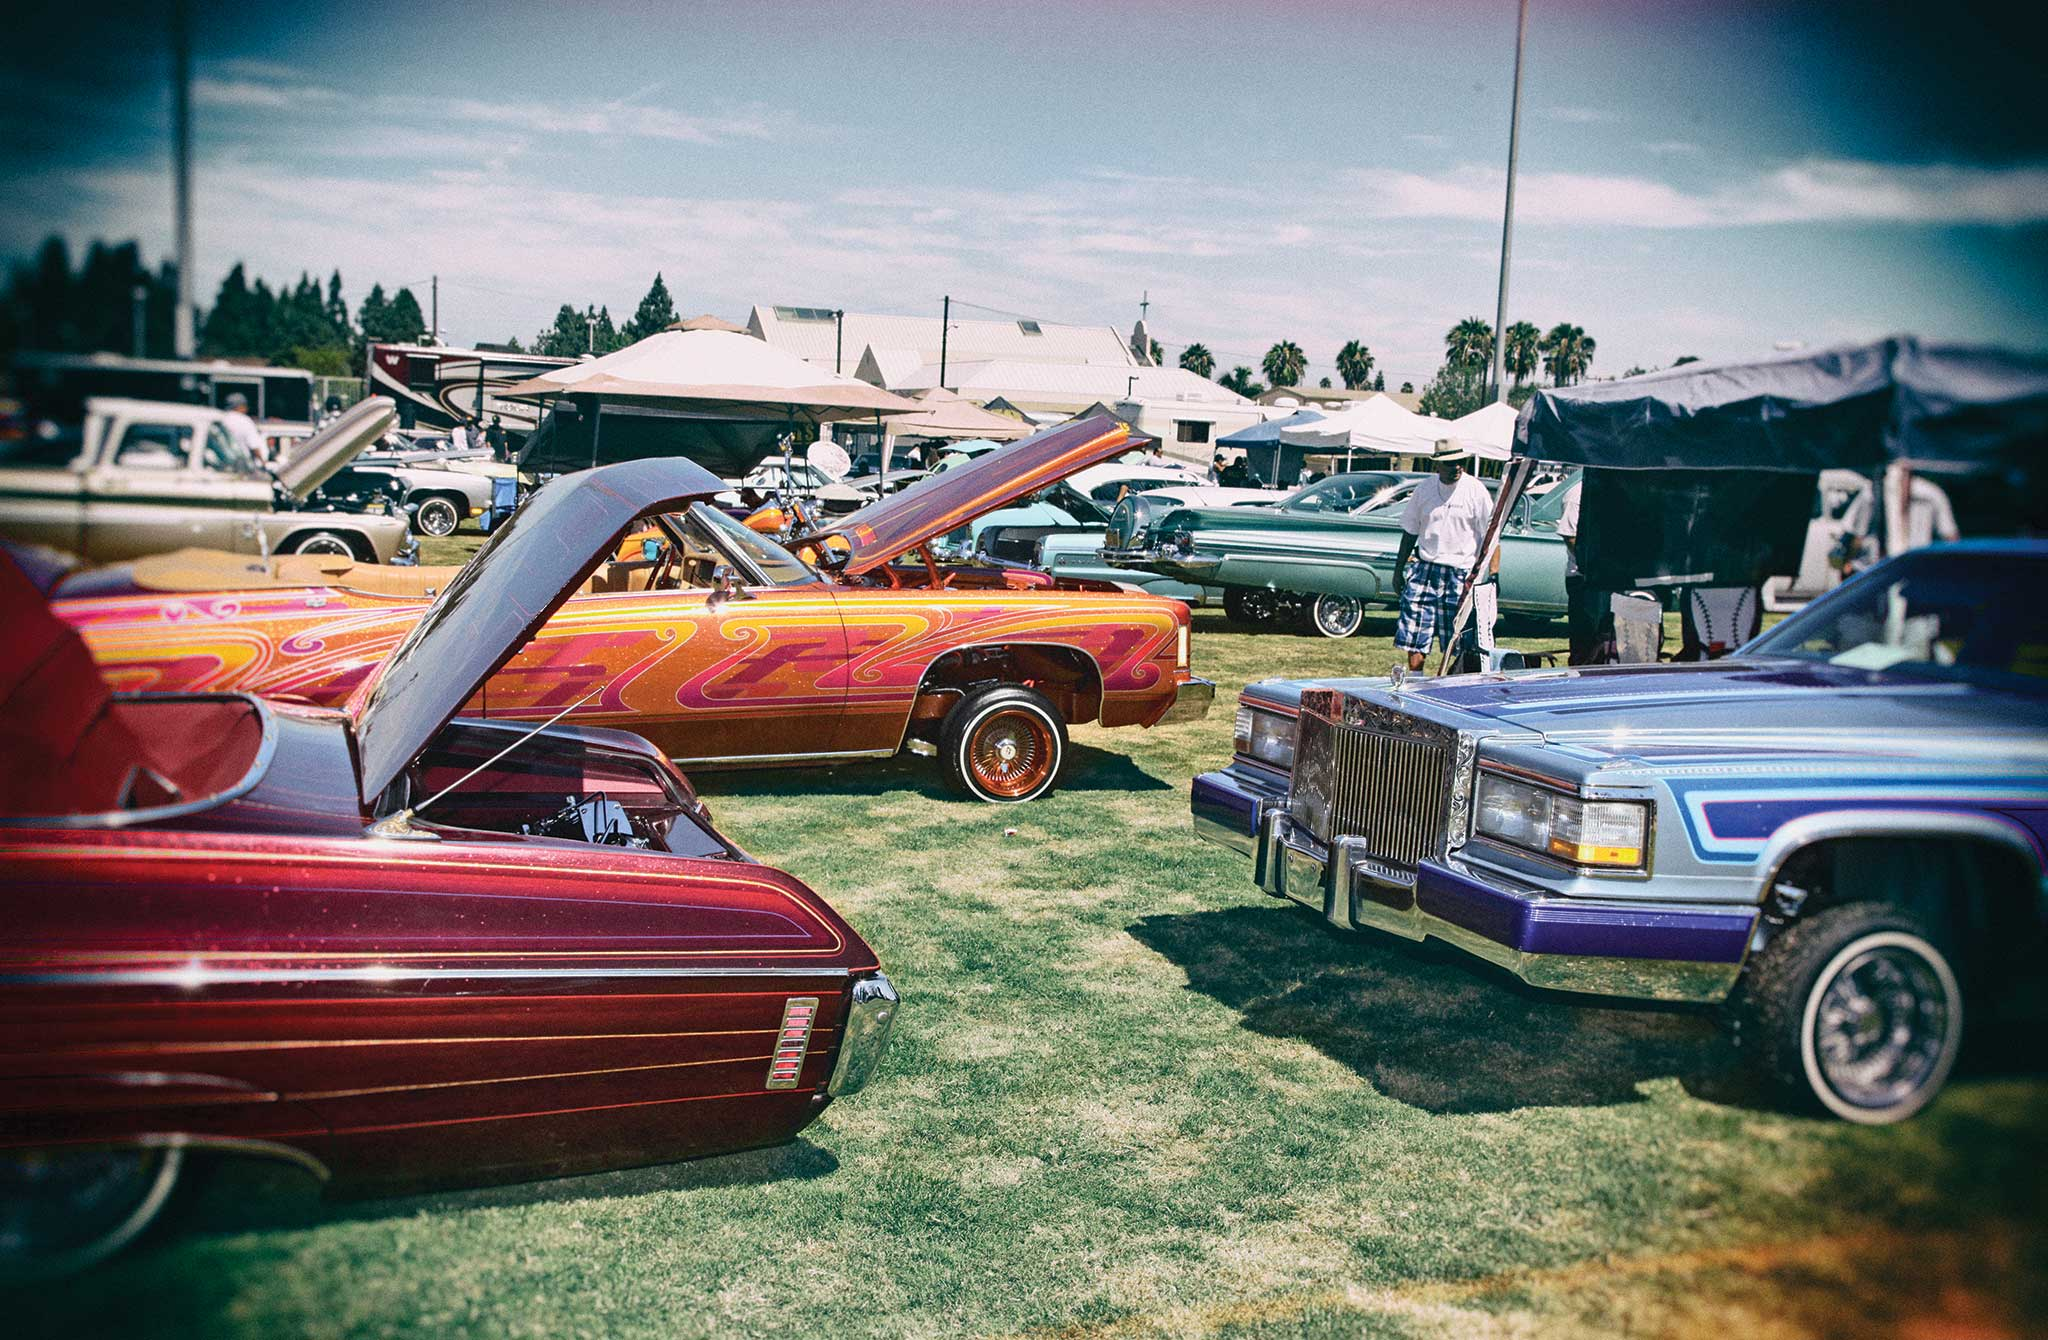 13th Annual Imperials Car Show Concert Lowrider